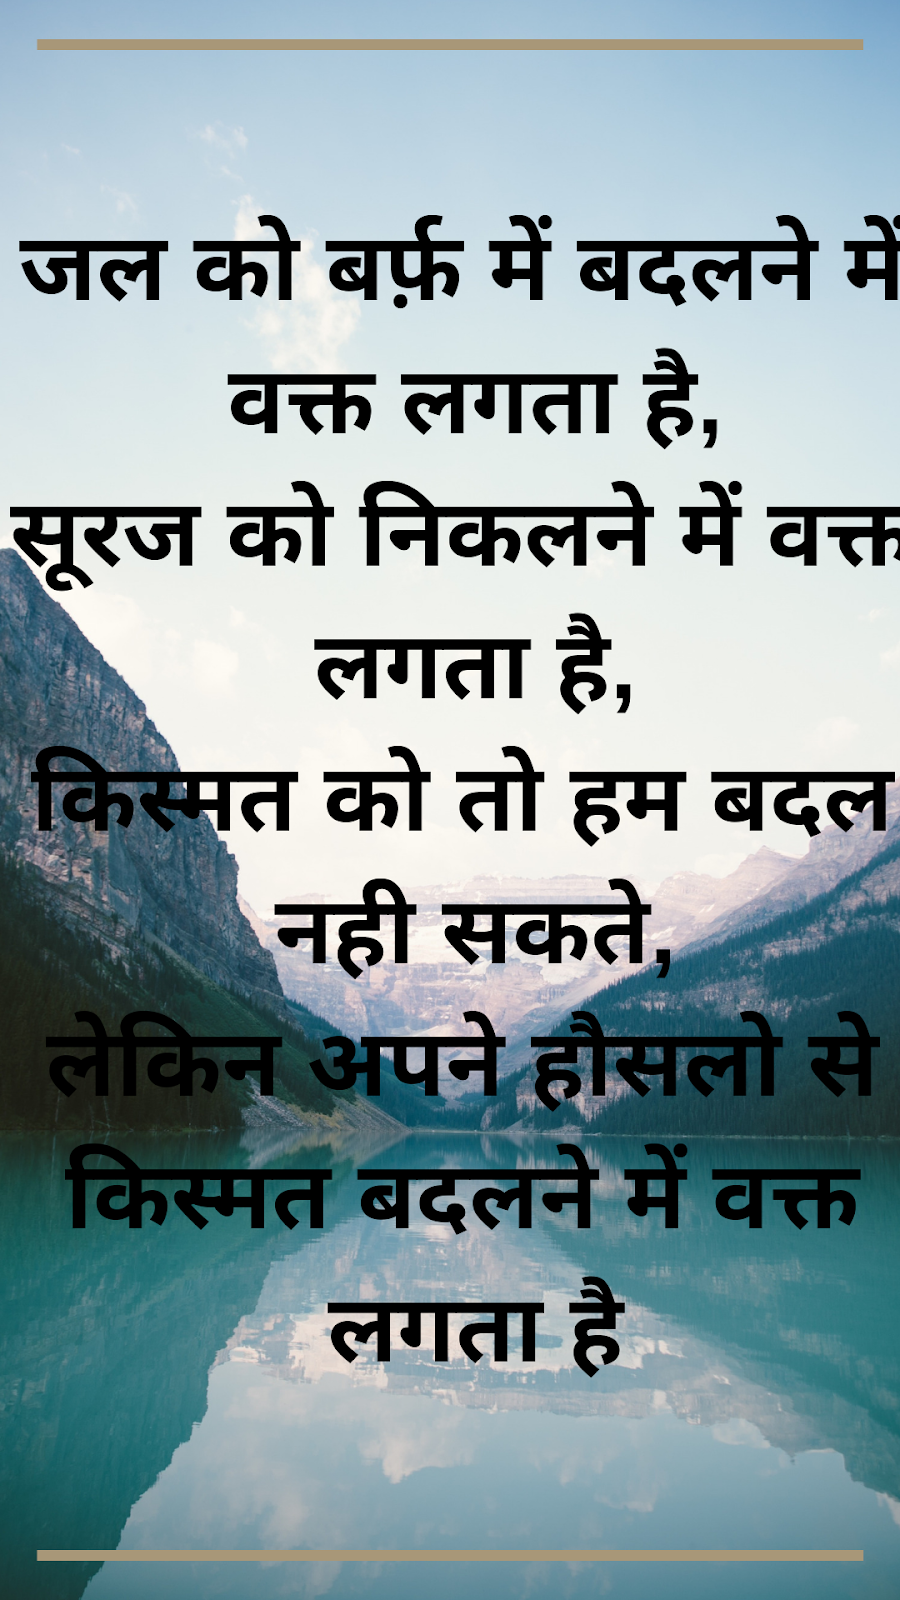 Inspirational Quotes For Students In Hindi in 2020 ...